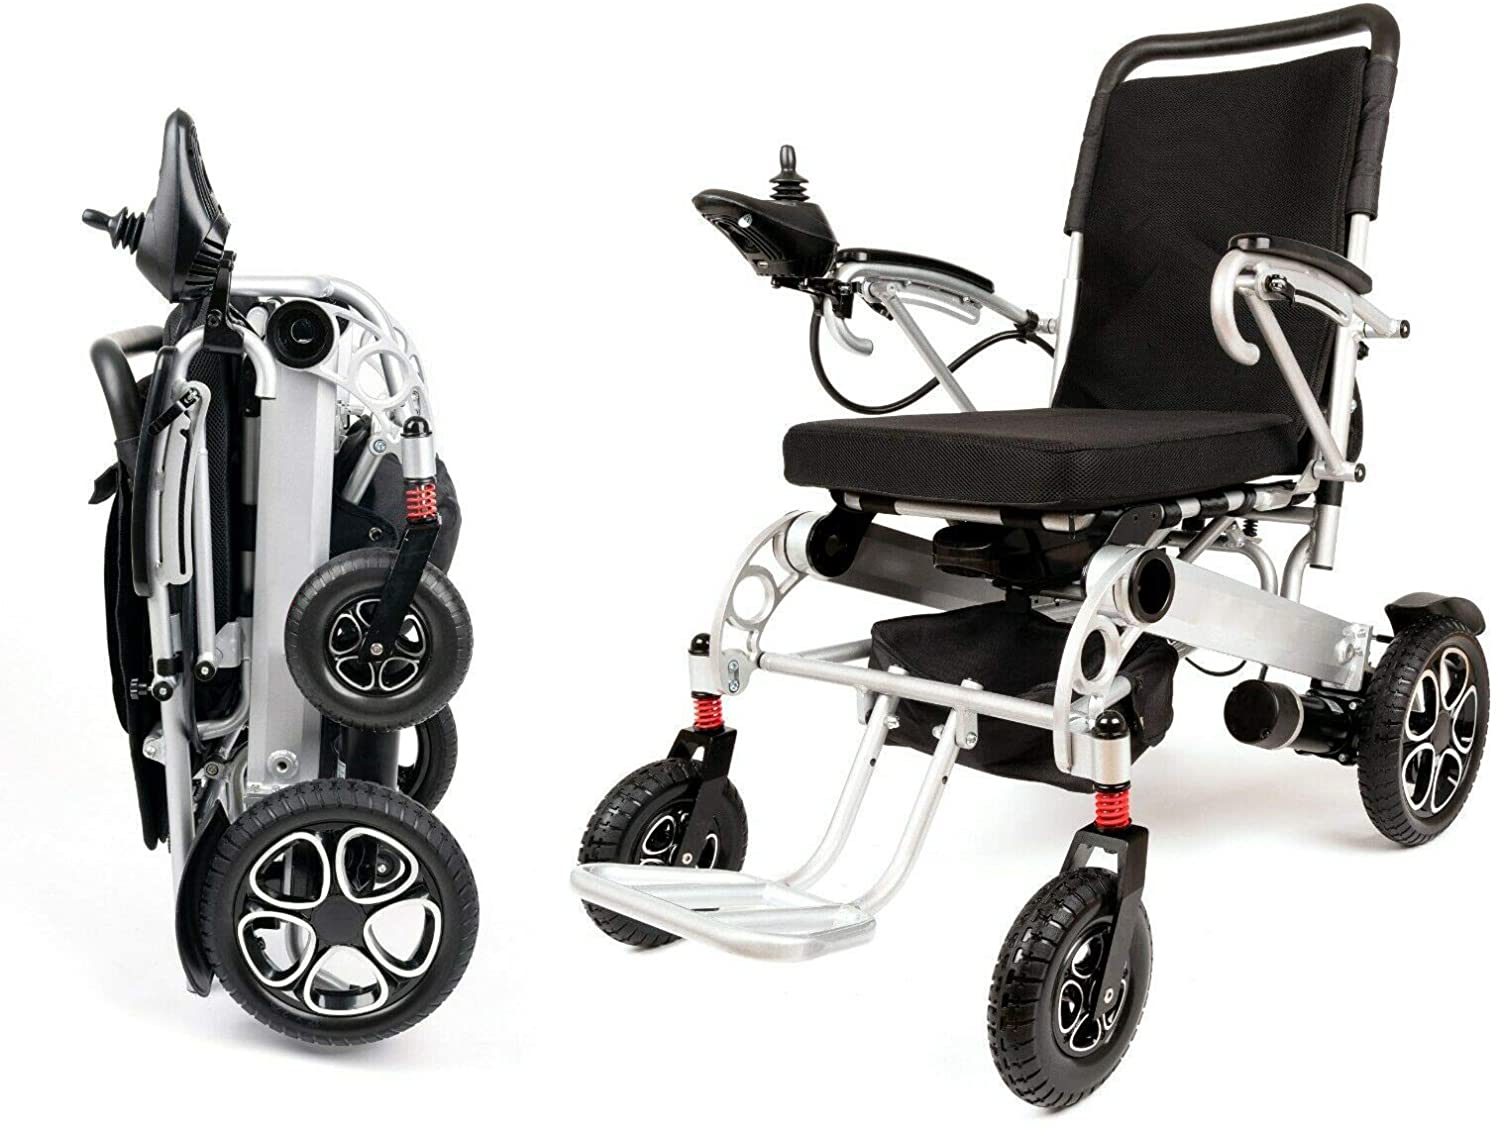 Patriot Folding Electric Powered Wheelchair, Supports up to 330 lbs, Approved for Airplane Travel, Safe and Easy Ride! Lightweight, Motorized